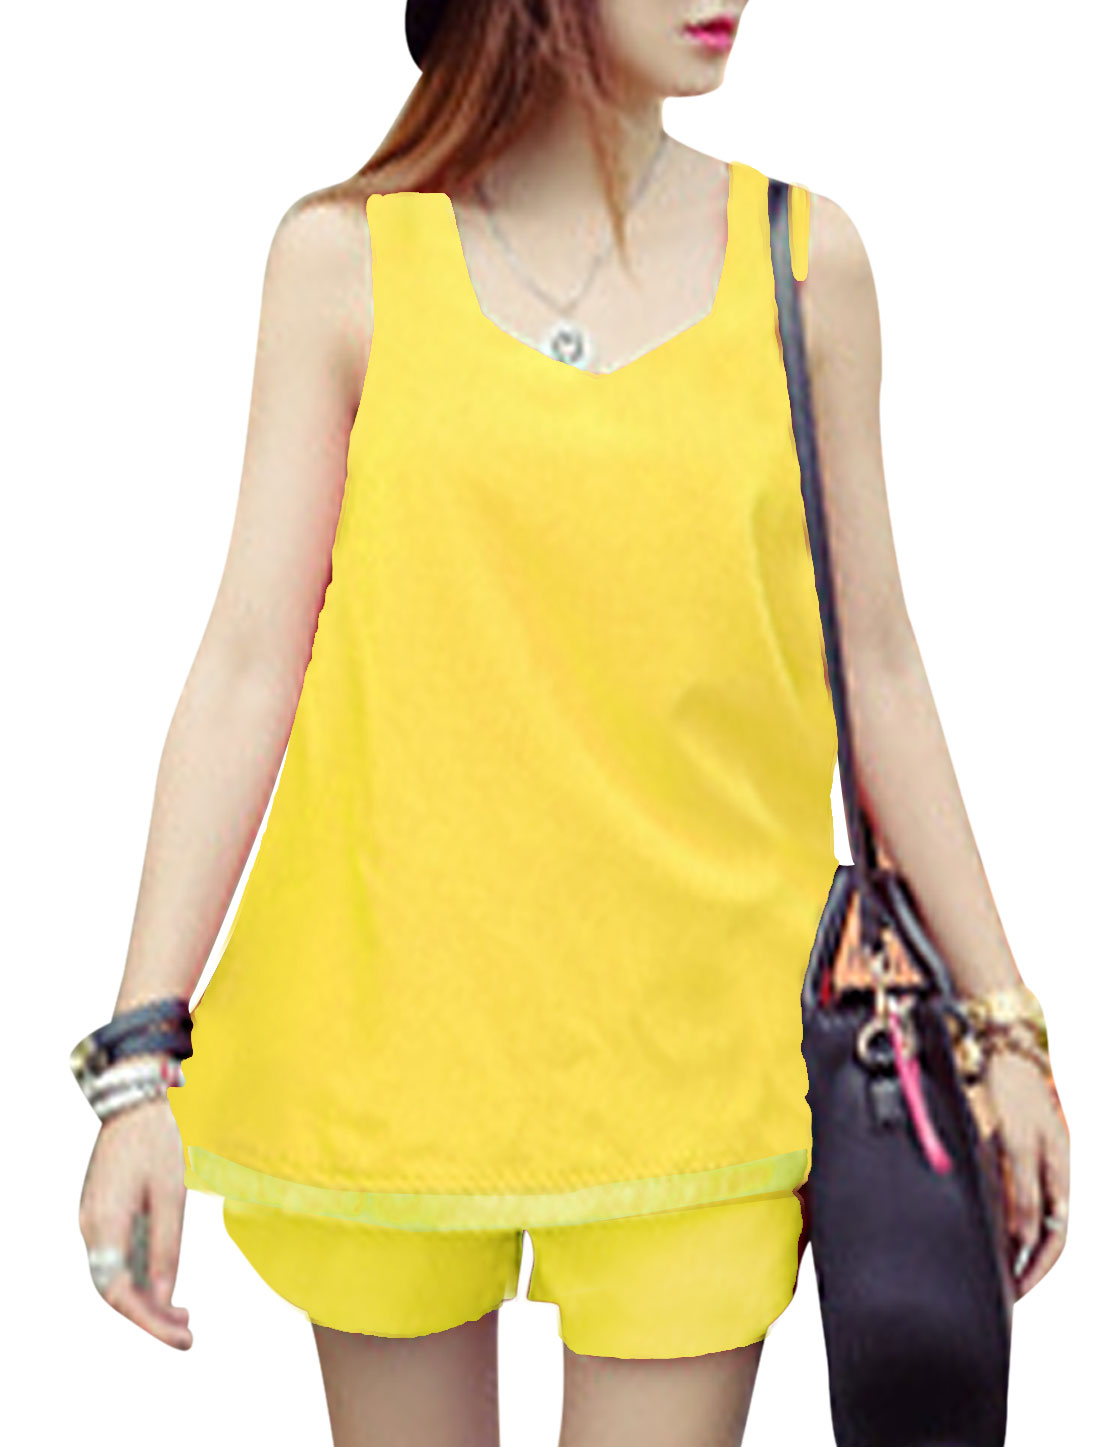 Lady Sleeveless Semi Sheer Hem Top w Stretchy Waist Shorts Yellow XS